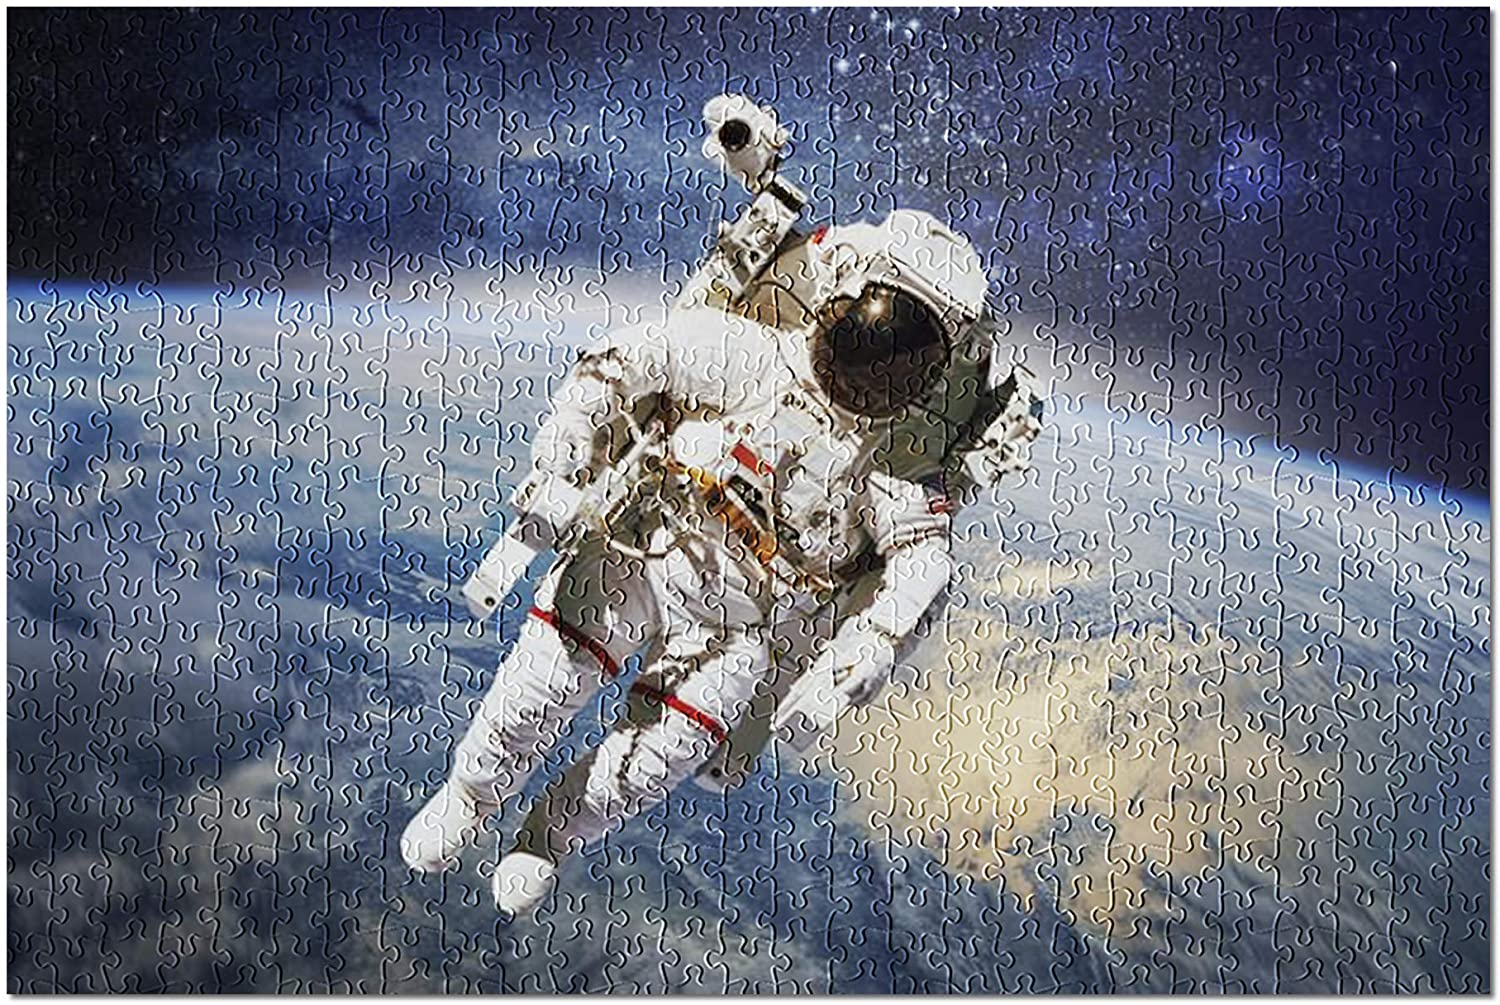 Astronaut in Outer Space with Planet Earth in The Background 9024392 (Premium 500 Piece Jigsaw Puzzle for Adults, 13x19)